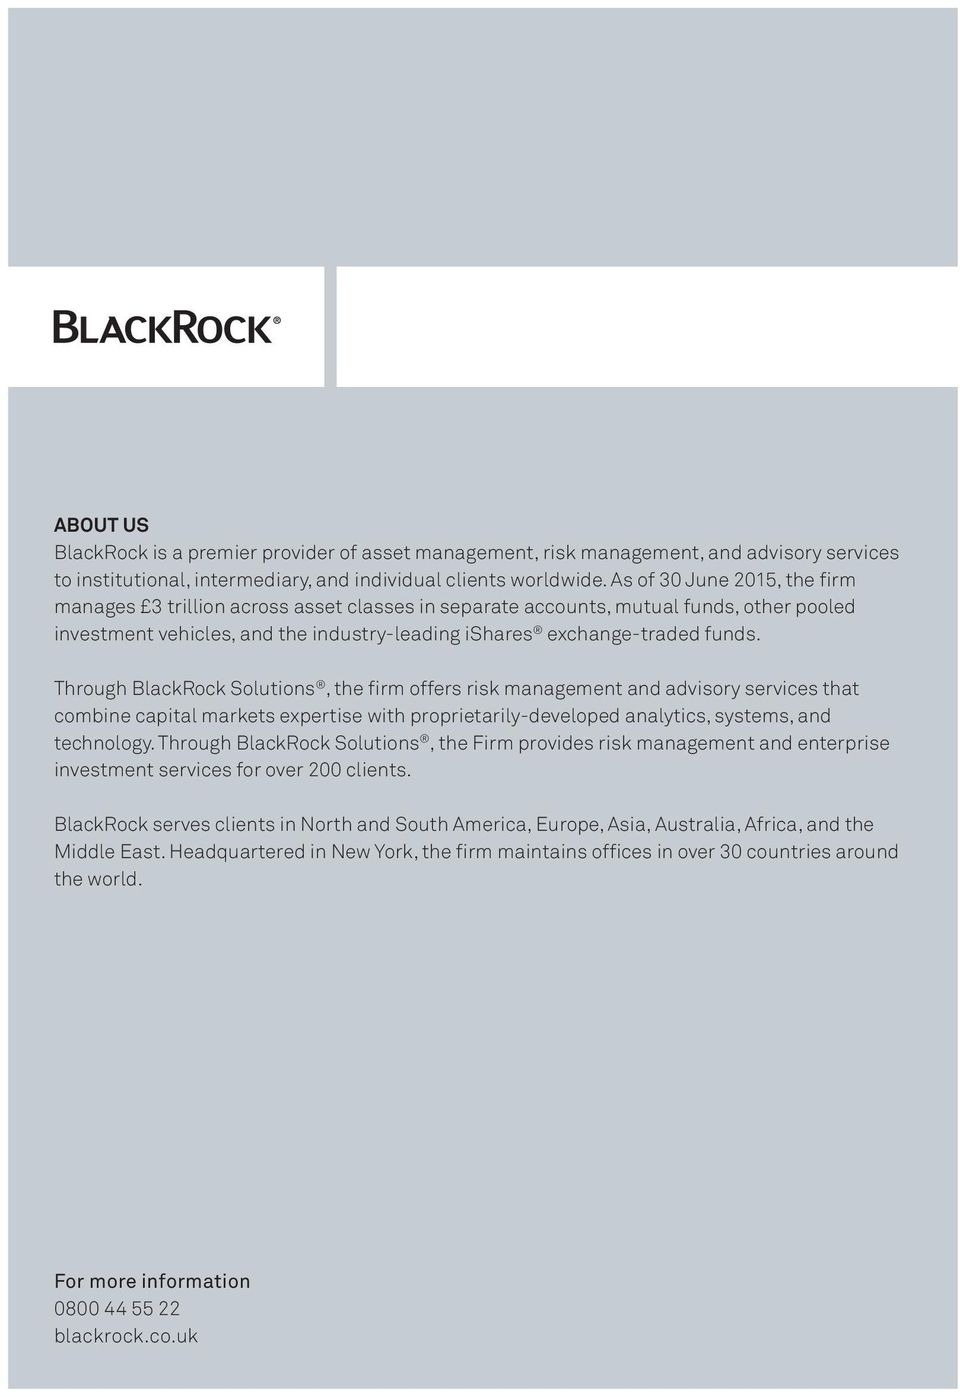 Through BlackRock Solutions, the firm offers risk management and advisory services that combine capital markets expertise with proprietarily-developed analytics, systems, and technology.